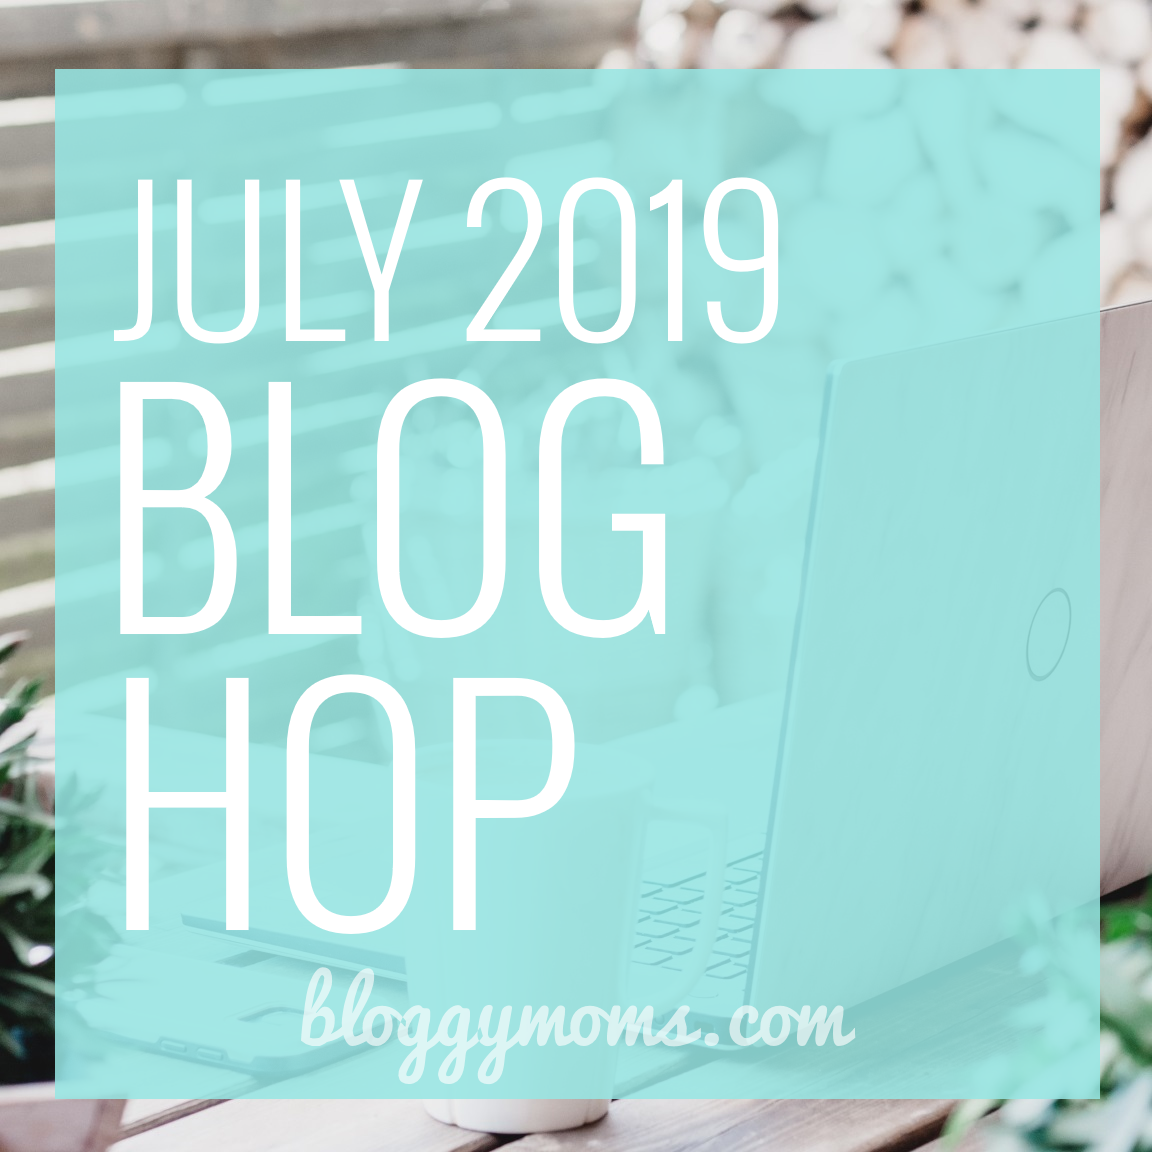 July 2019 Blog Hop